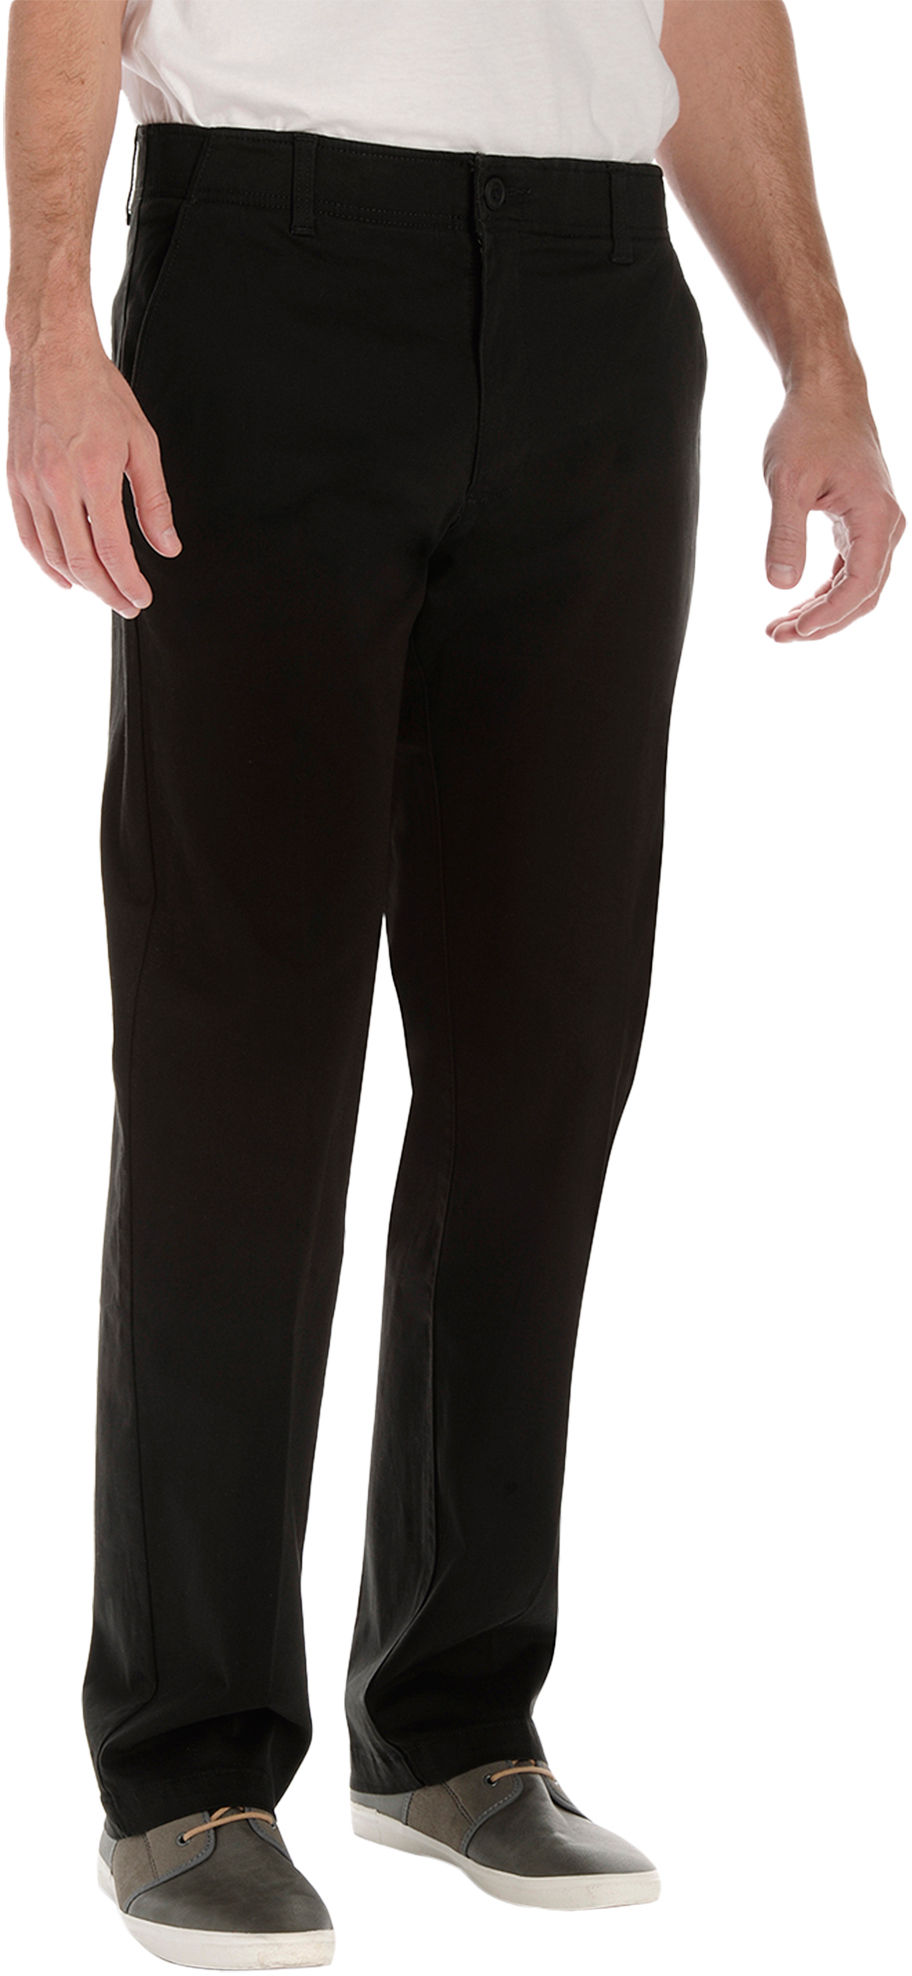 64e2fd9259c Lee Mens Big   Tall Xtreme Comfort Chino Pants 46w X 32l 32 Black. About  this product. Picture 1 of 2  Picture 2 of 2